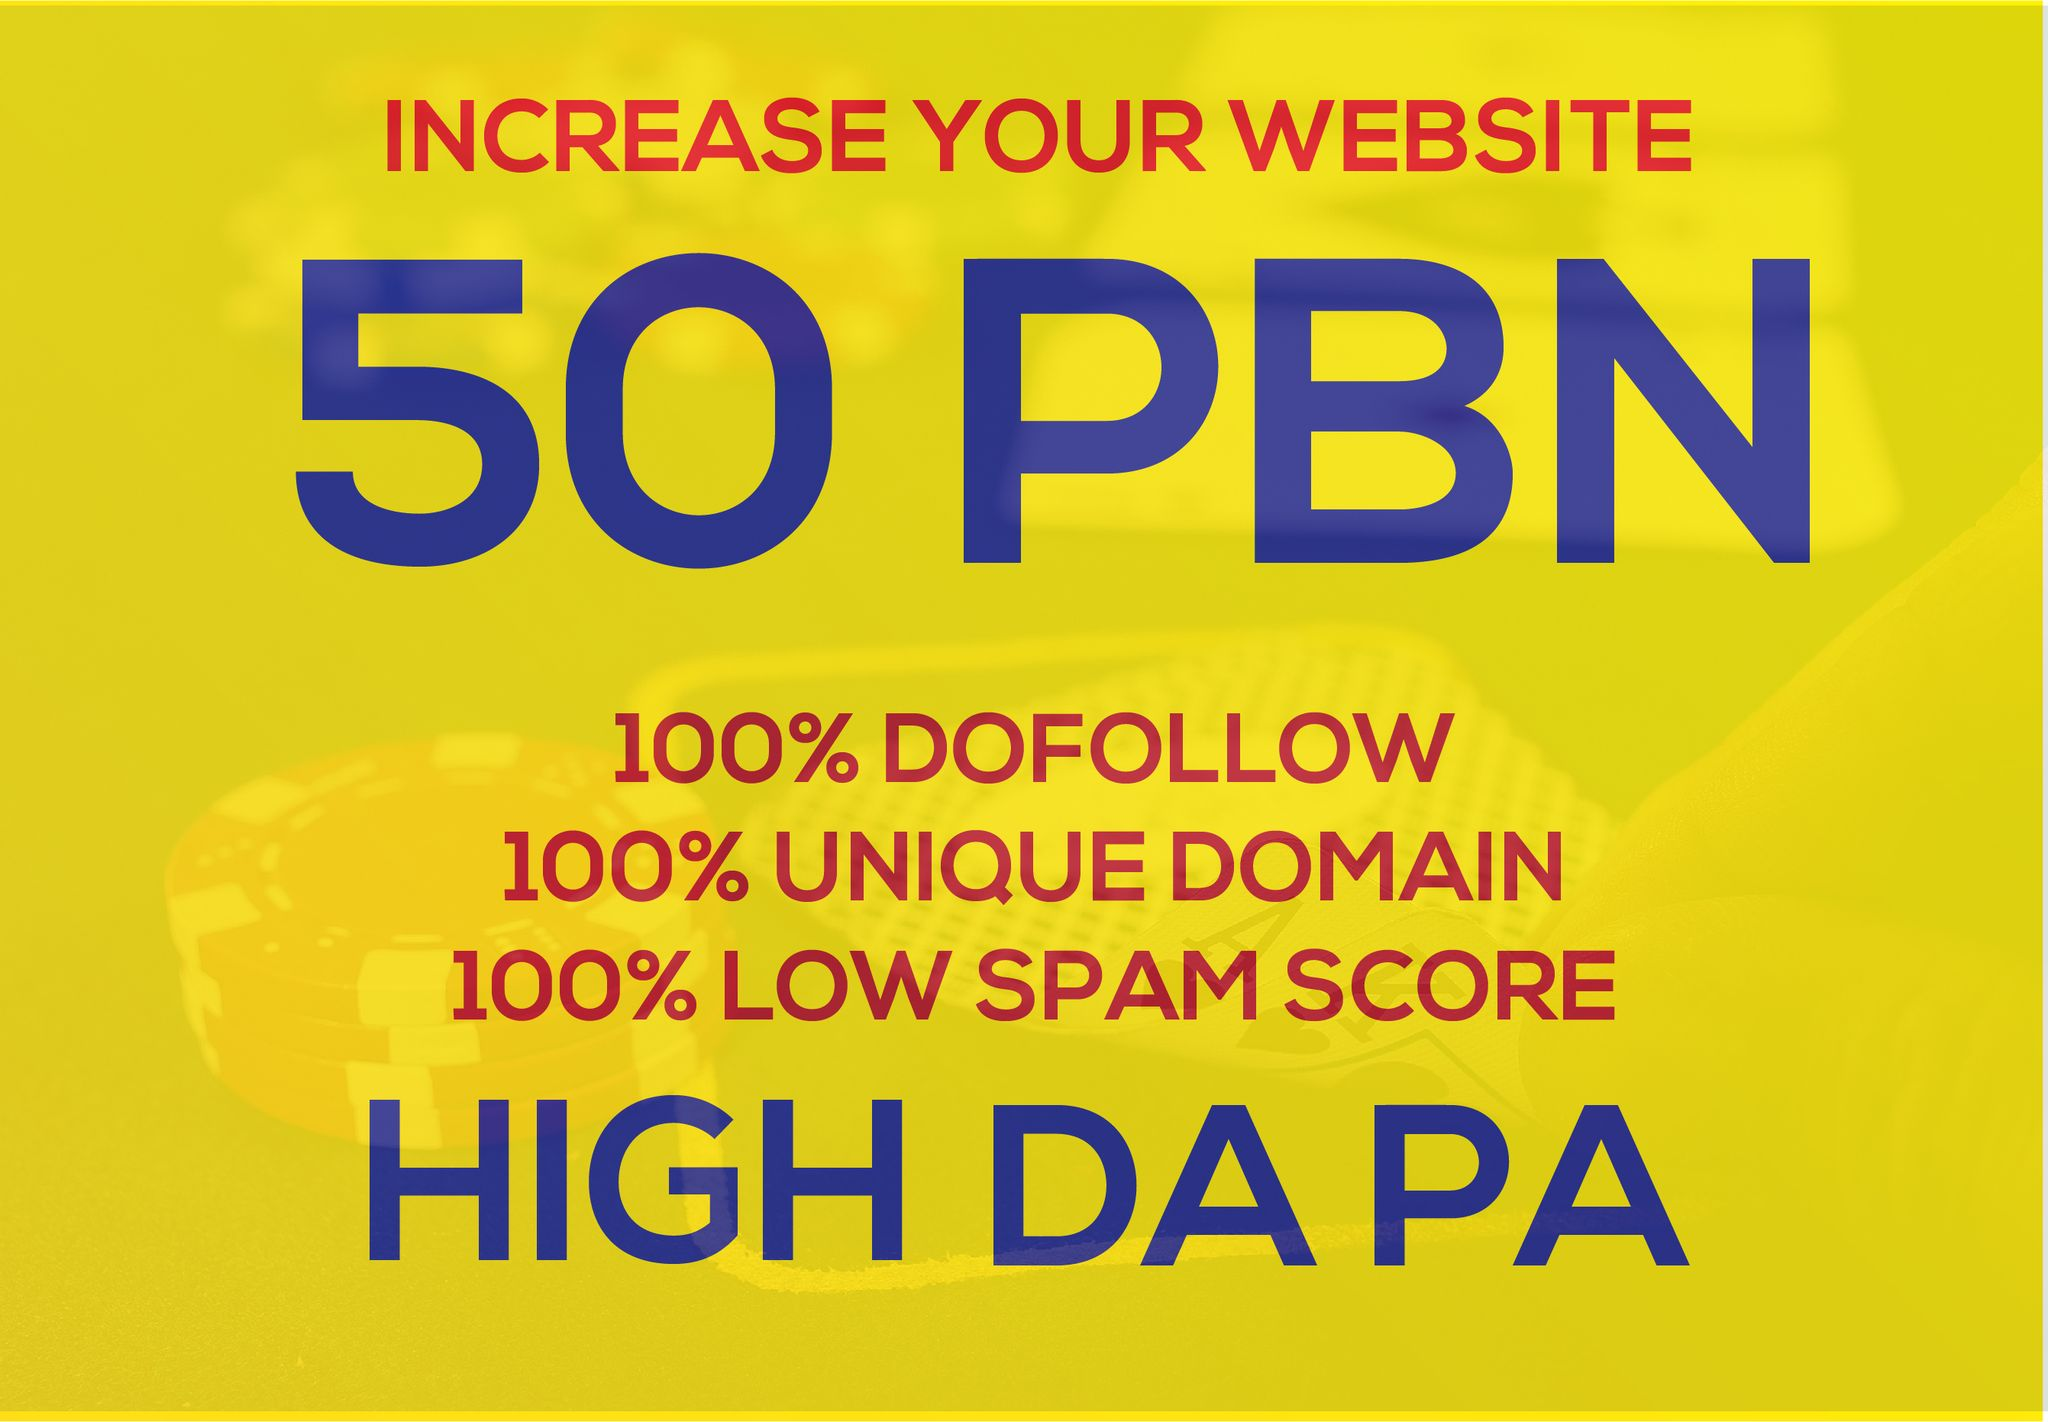 Get 50 PBN on High DA and DR Backlinks for your website